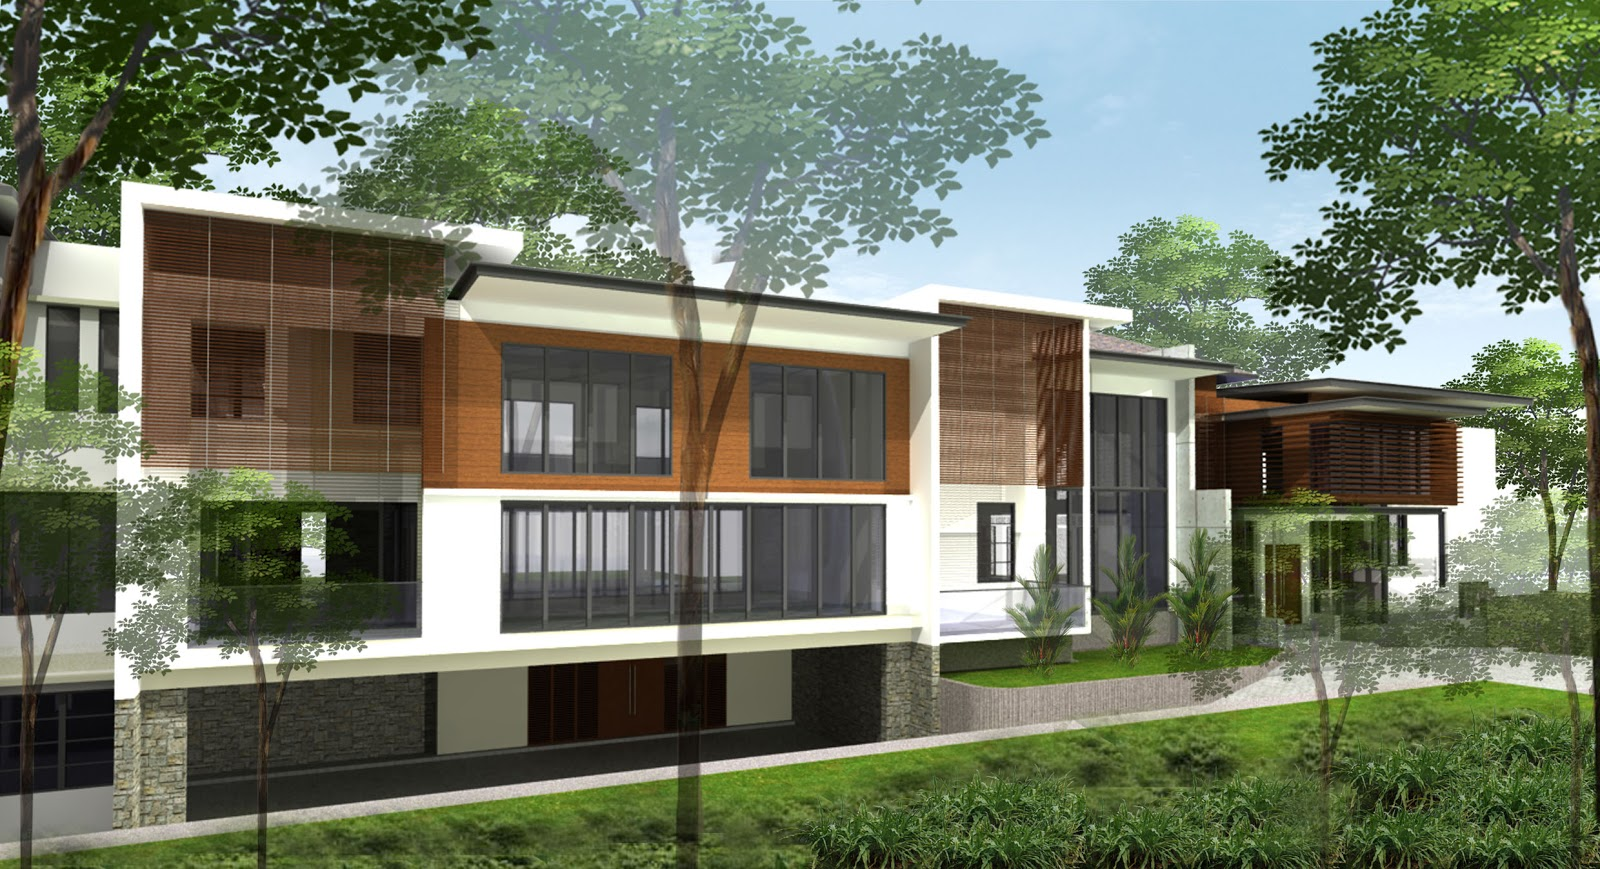 2 storey bungalow with 1 level sub basement sg penchala for Two story bungalow